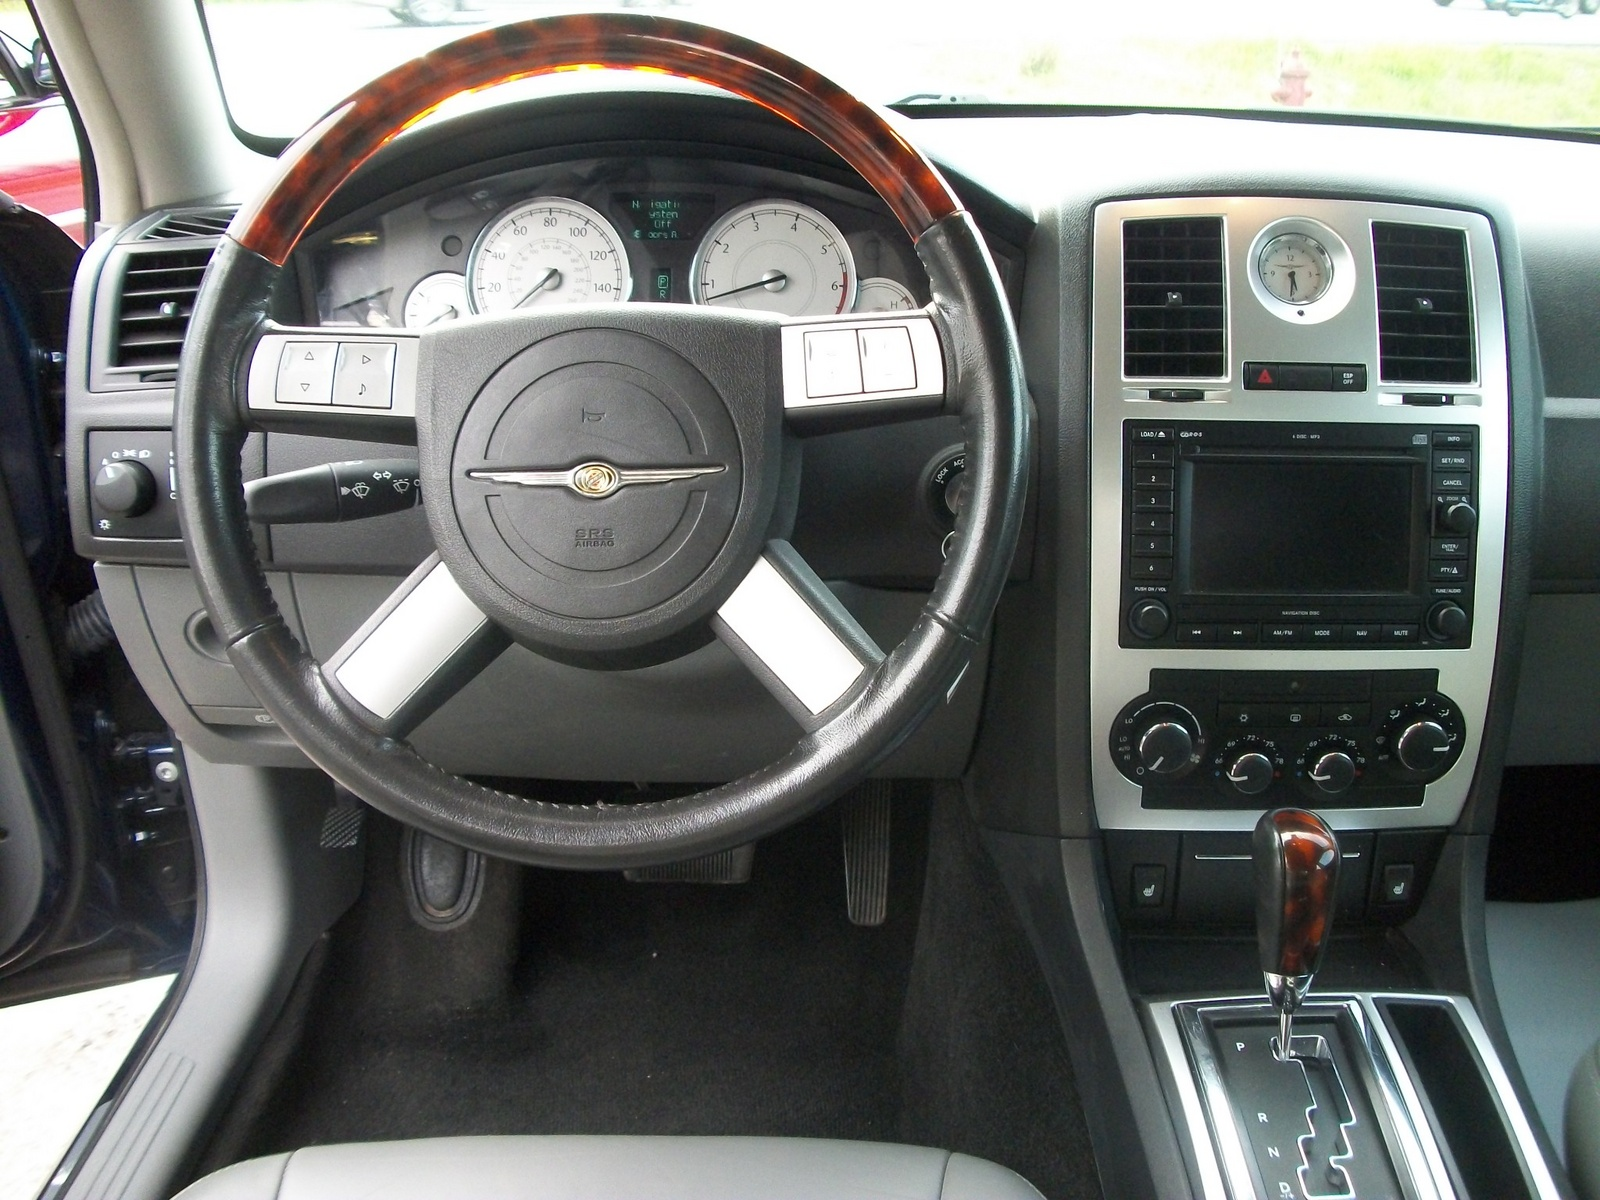 2005 chrysler 300 interior pictures cargurus